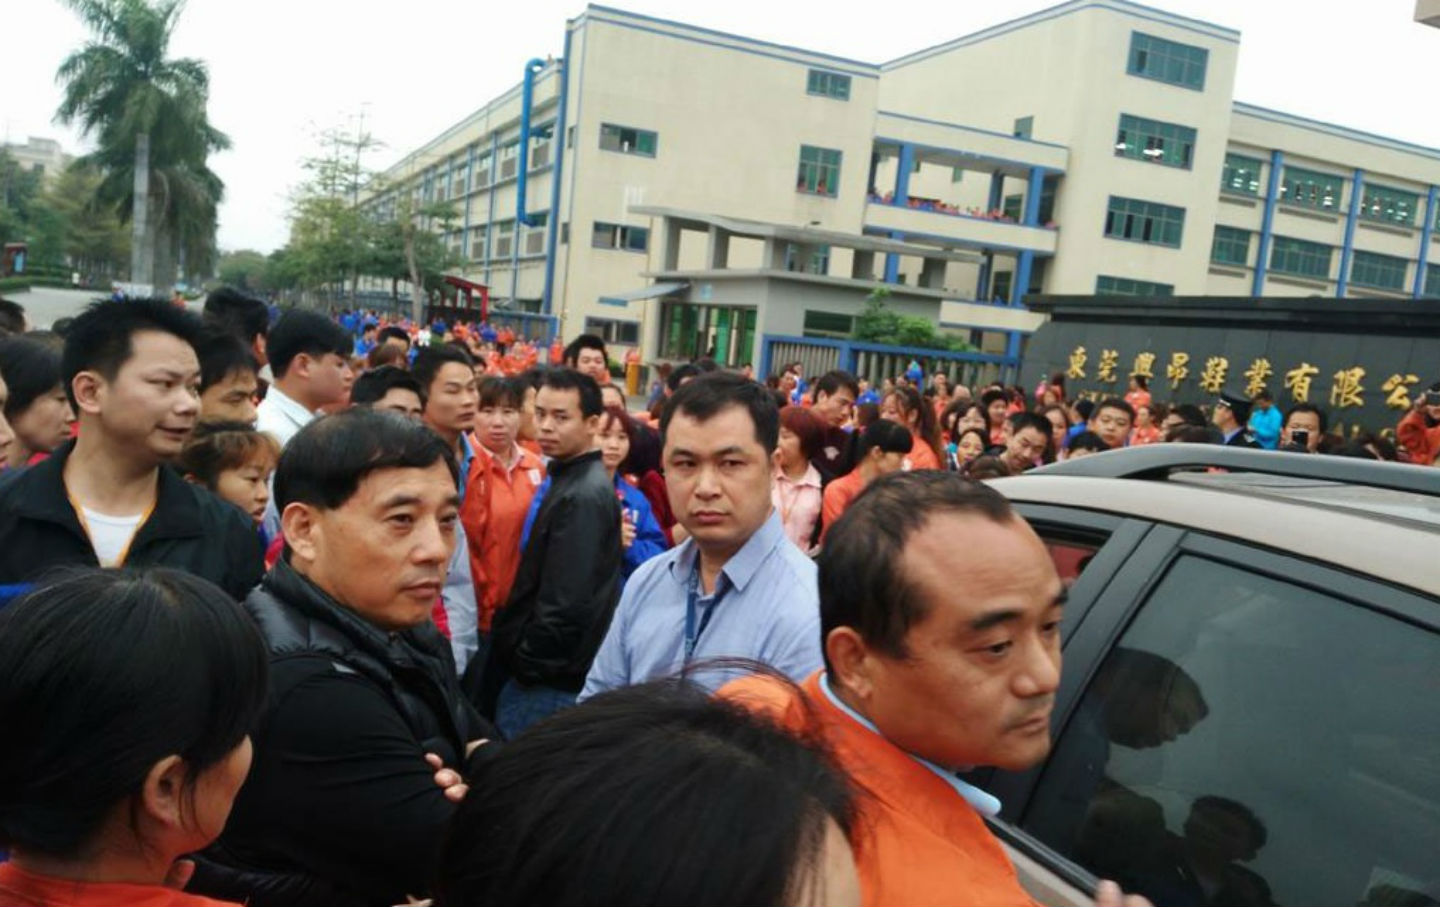 Workers-at-Stella-Footwear-factory-in-China-go-on-strike